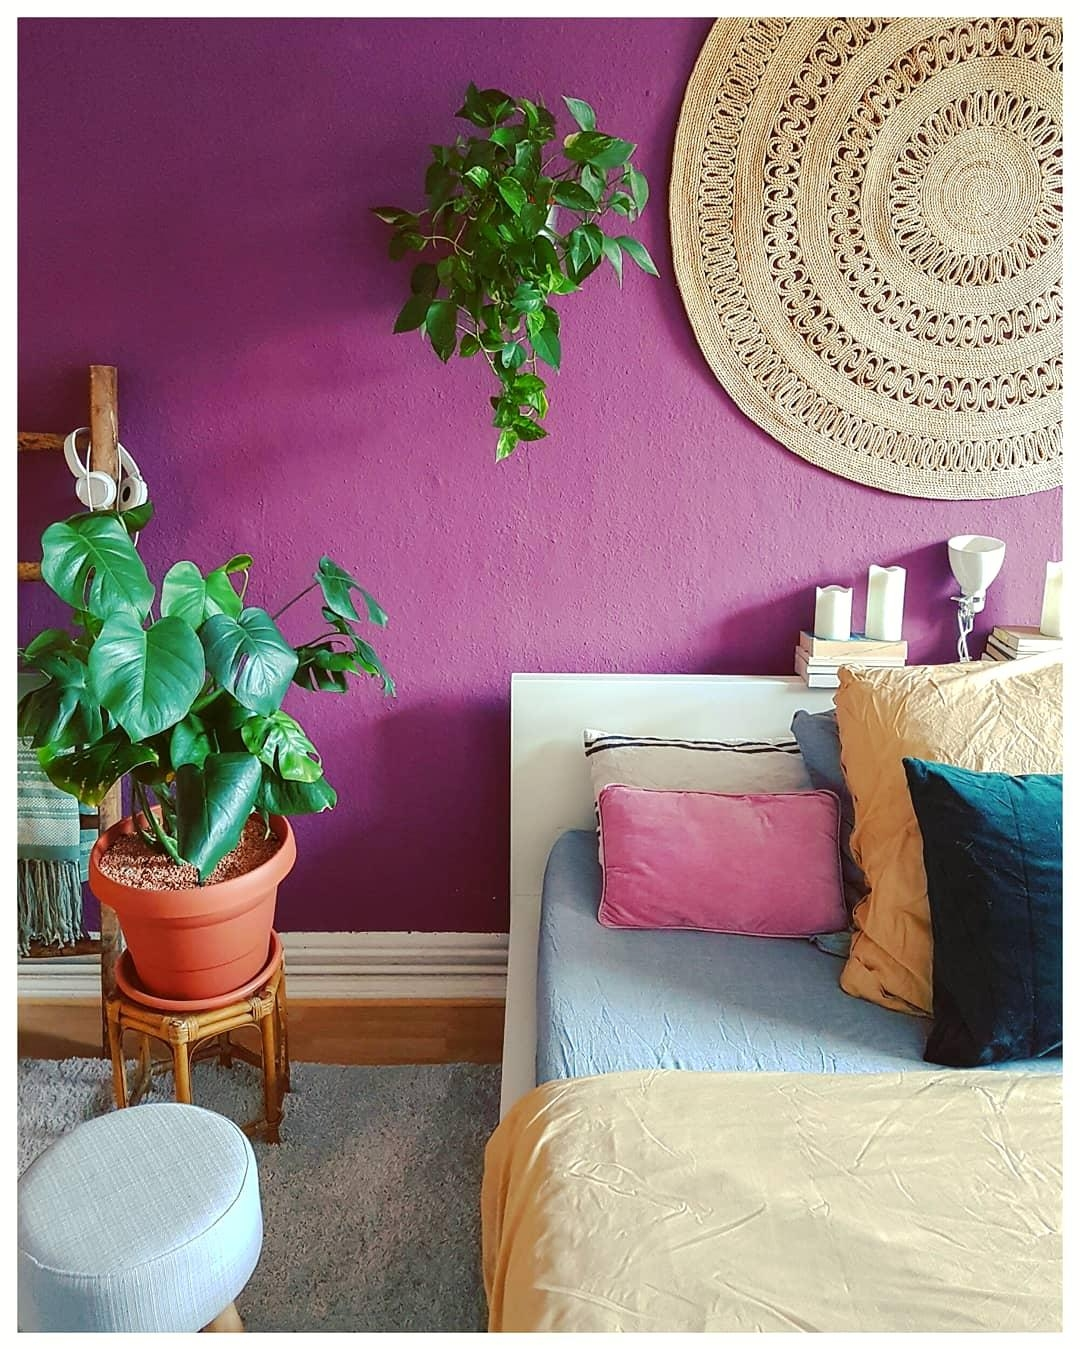 #bedroom #colorful #plants #bohohome #bohemian